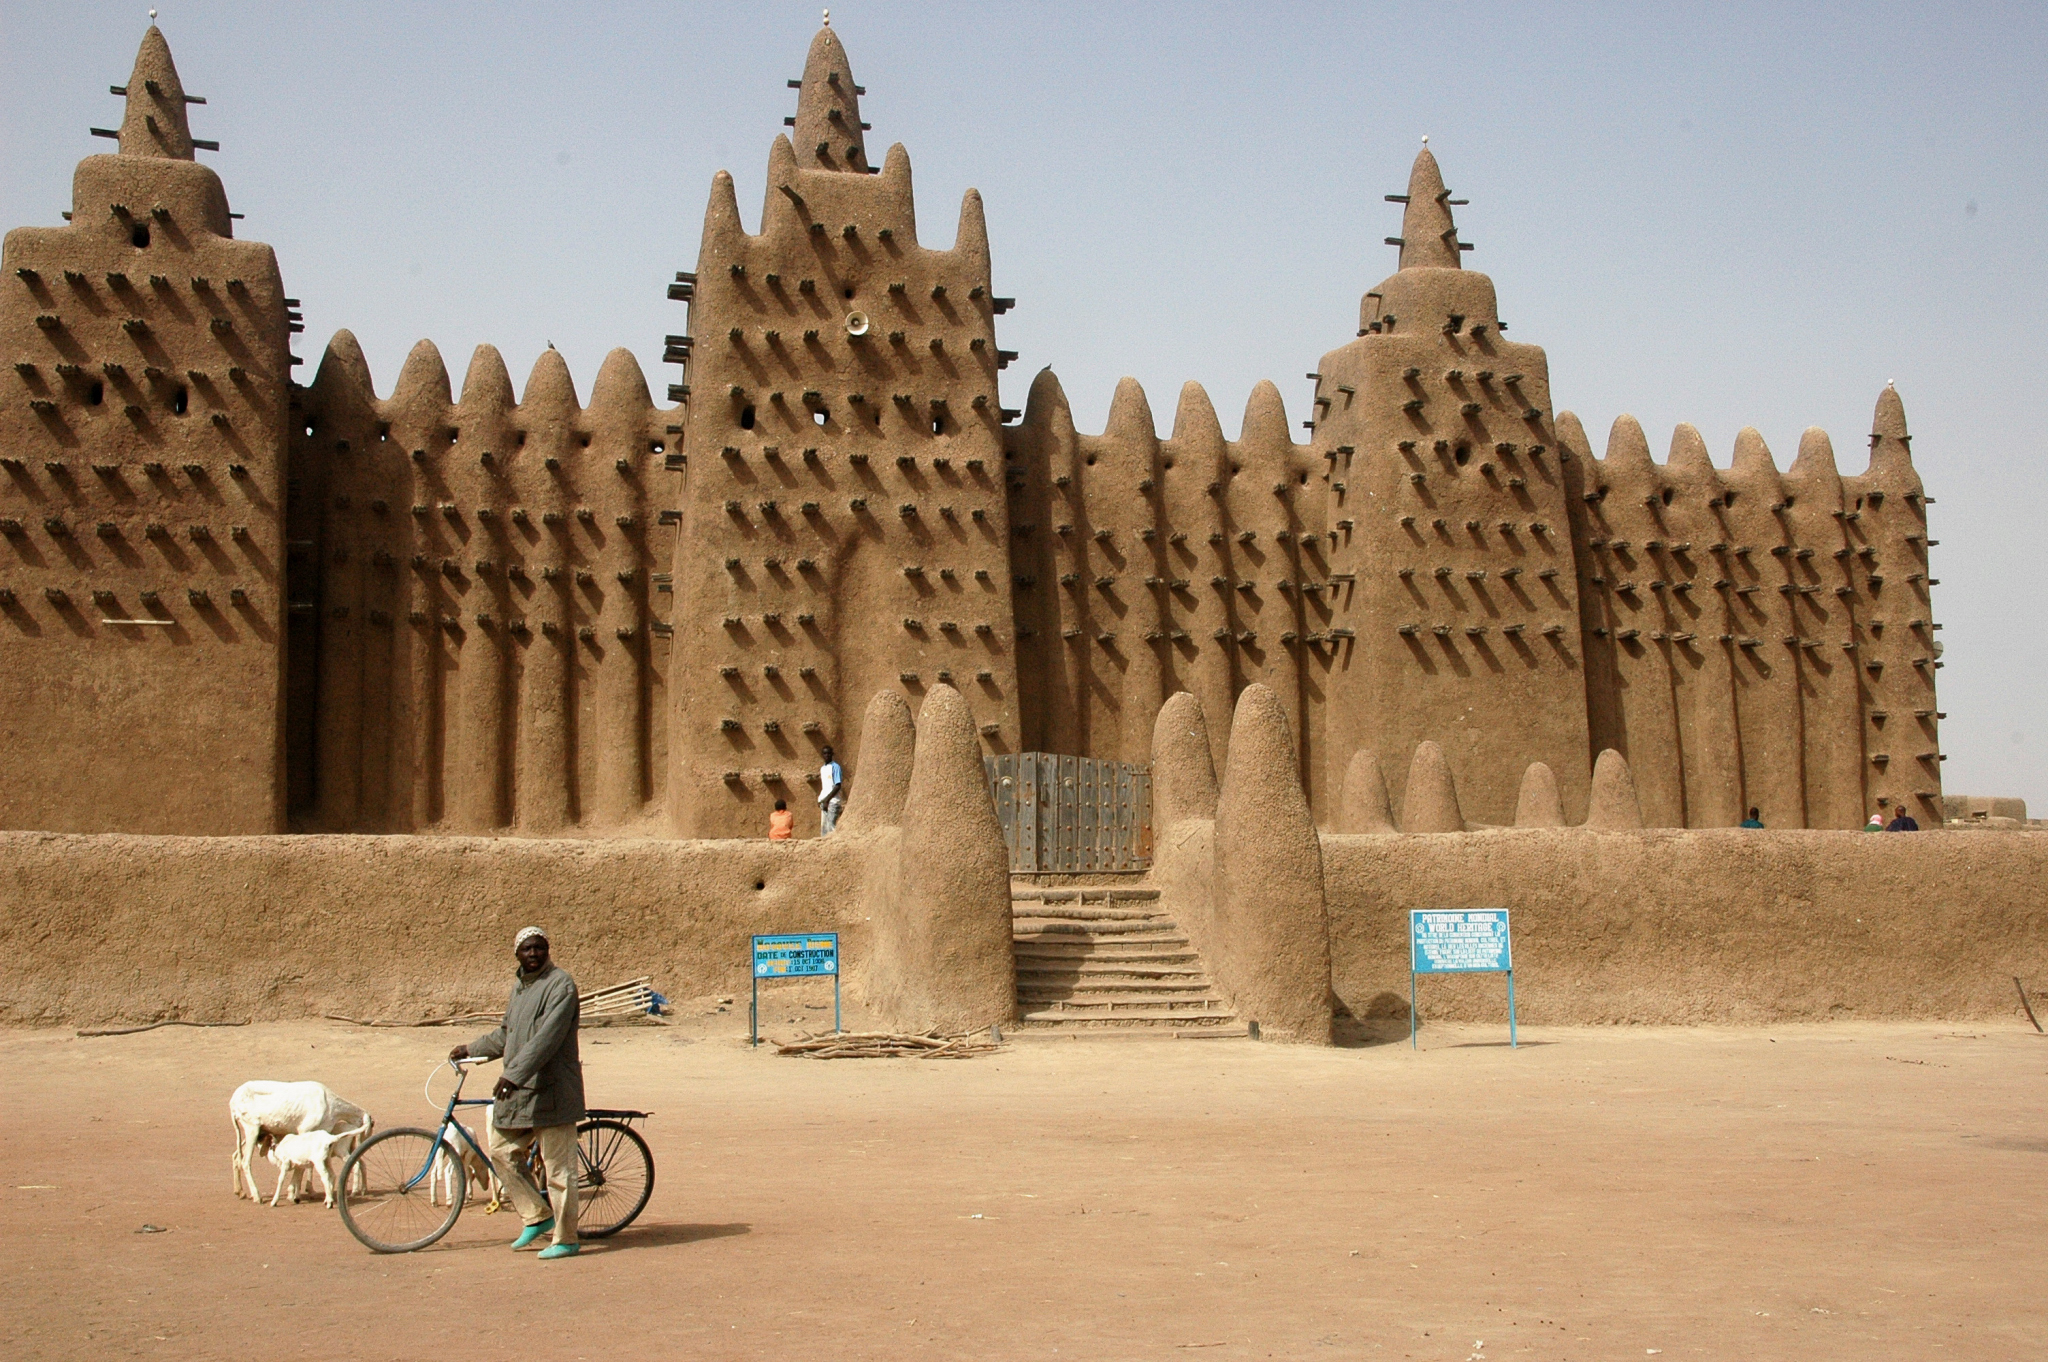 http://upload.wikimedia.org/wikipedia/commons/7/75/Djenne_great_mud_mosque.jpg